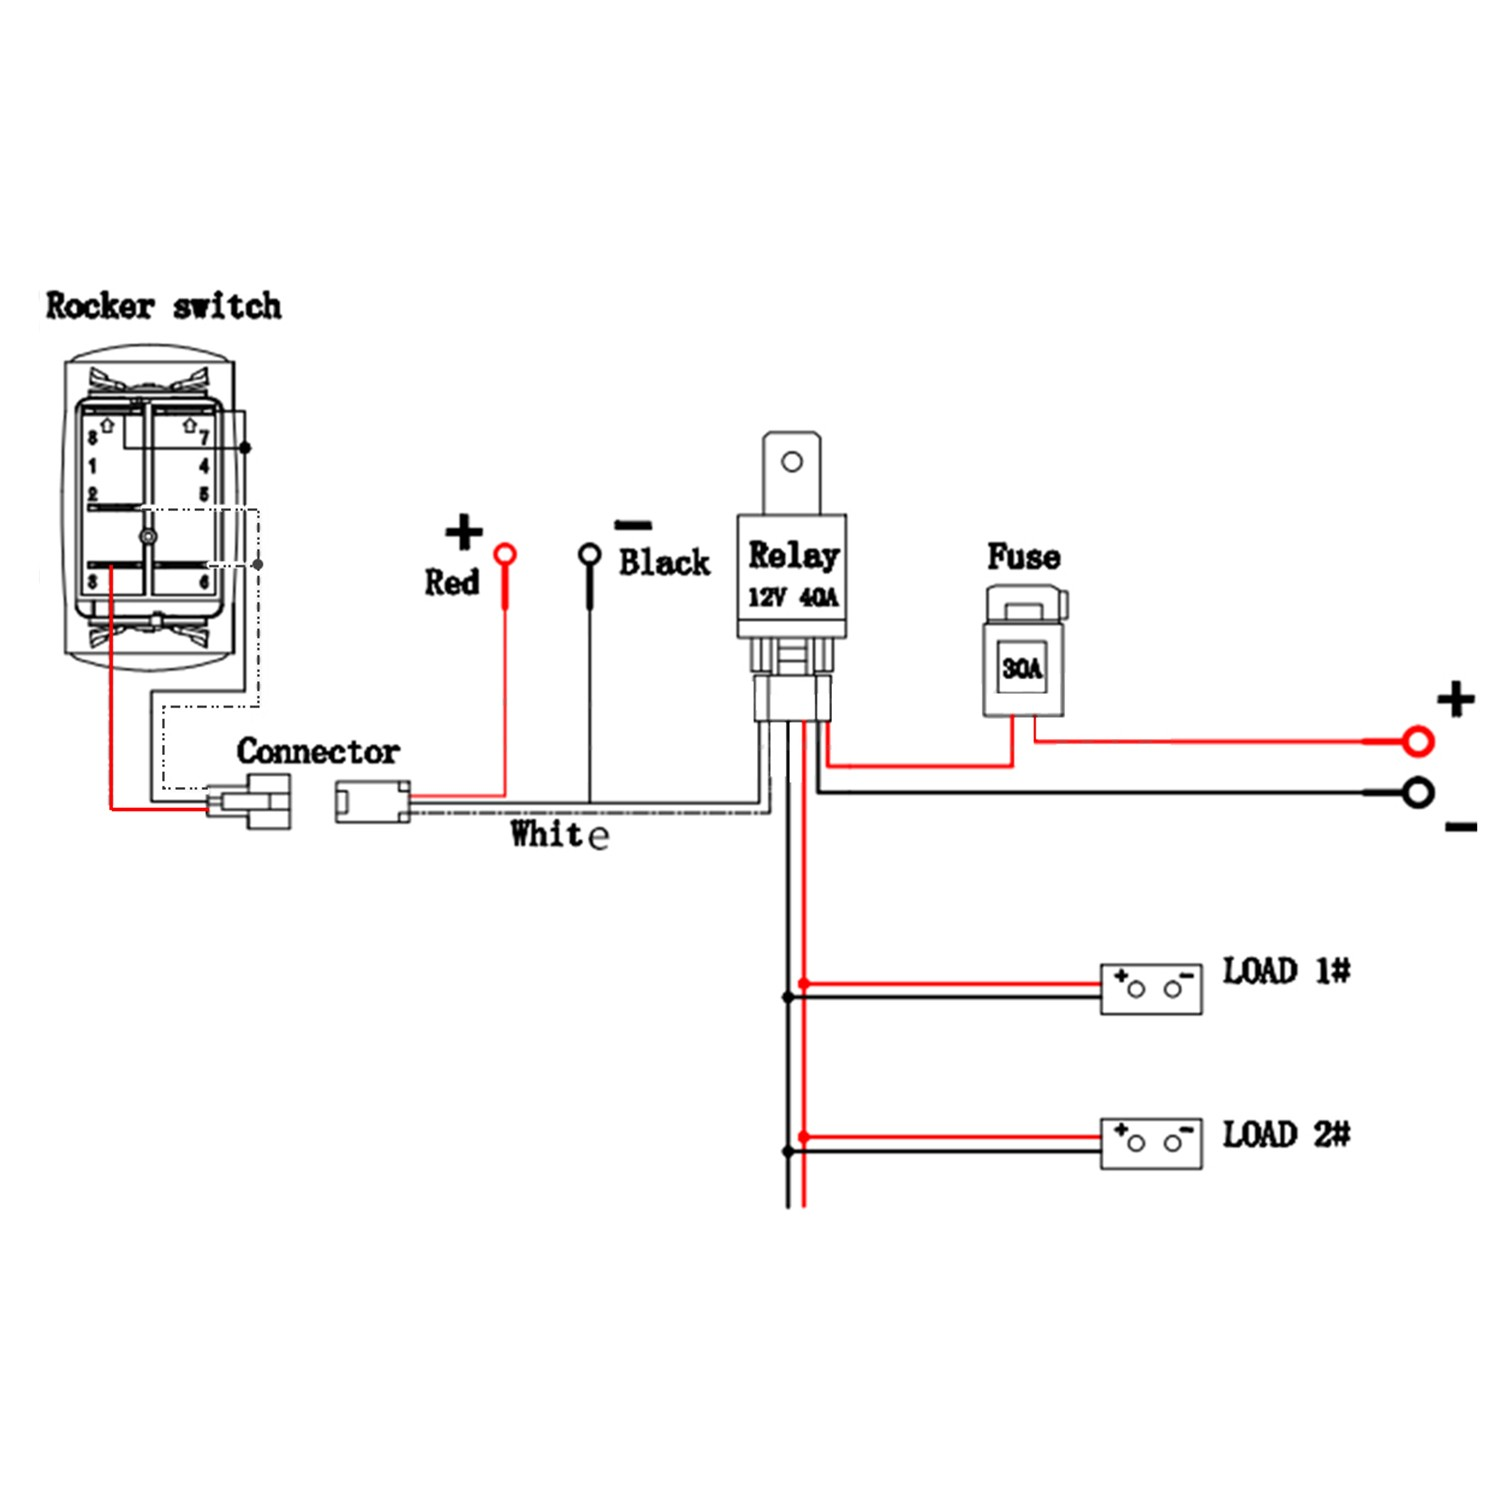 hight resolution of wiring multiple lights with switch at end of run wire data schema u2022 outdoor lighting